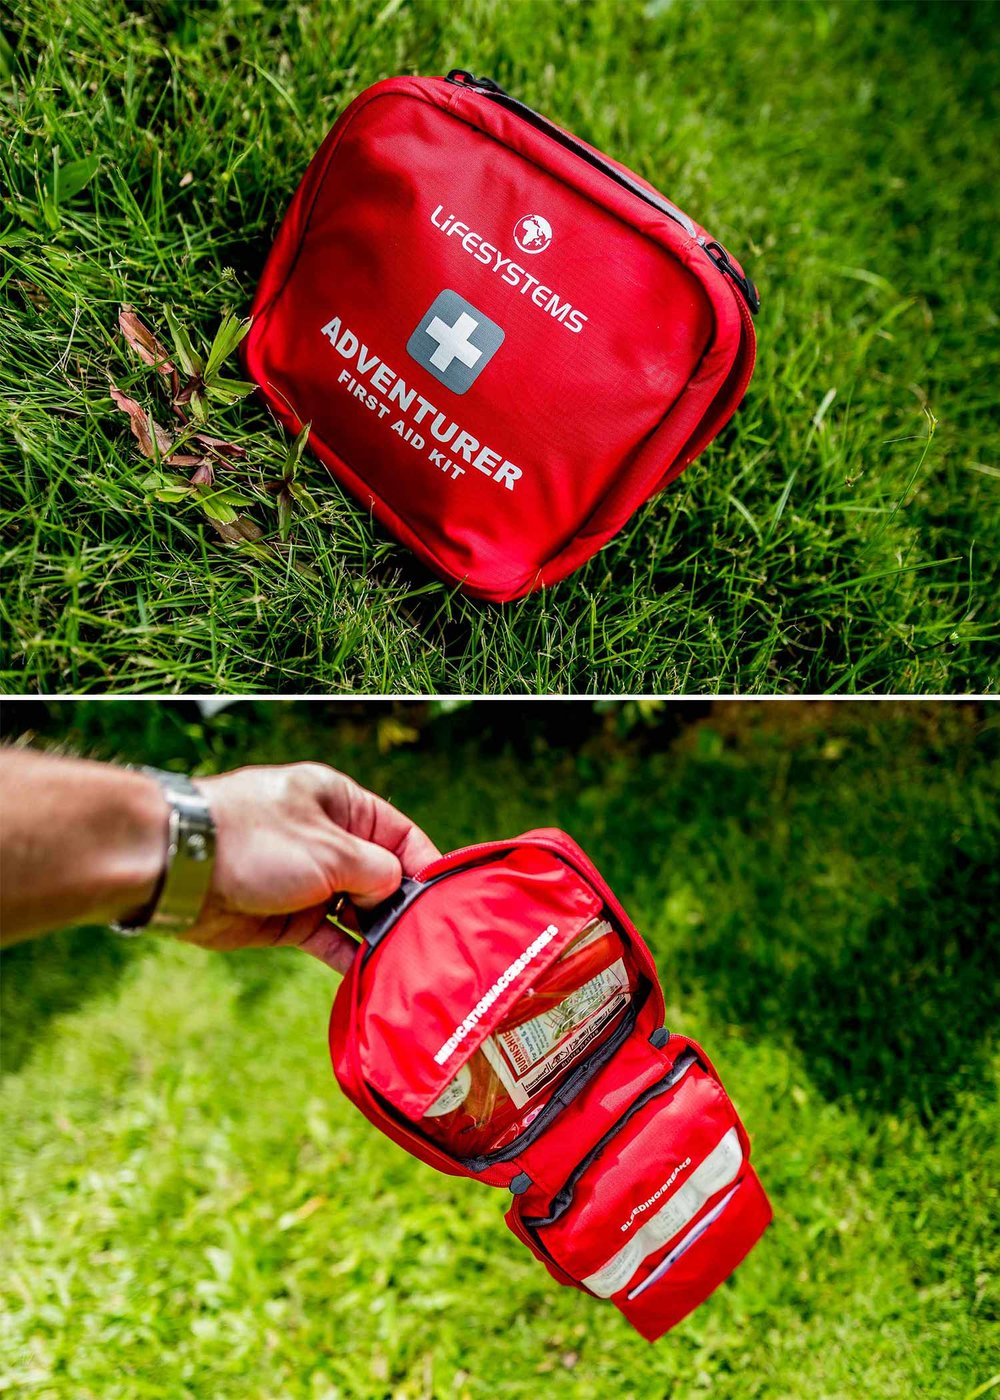 Lifesys. First Aid - Luckily I don't get a huge amount of use out of this pack item, but the Lifesystems Adventurer First Aid Kit is a useful addition on the off chance something serious happens.  Especially when camping with kids the included bandaids usually come in handy, and I have found myself using the scissors and tweezers on more than one occasion as well.  The other handy items that my get used include the alcohol swabs and medical tape for various makeshift camping needs.  Other items will hopefully never get any use as they would be needed only under very serious circumstances. That said its nice to know I'd have access to them in the worst case scenario and I highly recommend you to get this or an equivalent system for your pack. Buy Lifesystems First Aid